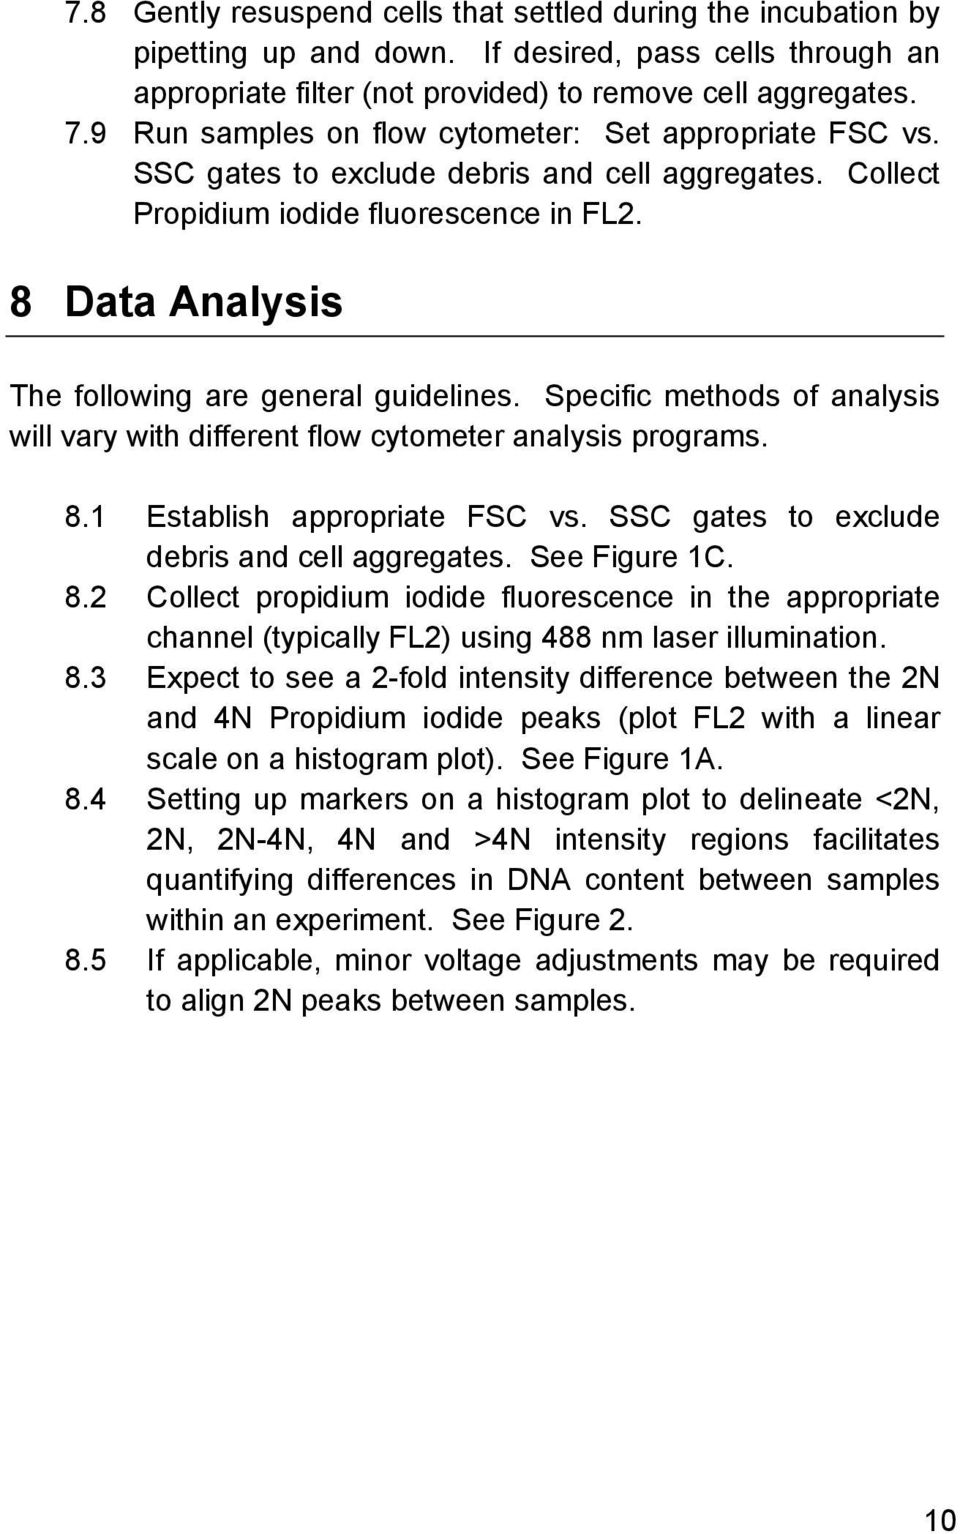 8 Data Analysis The following are general guidelines. Specific methods of analysis will vary with different flow cytometer analysis programs. 8.1 Establish appropriate FSC vs.